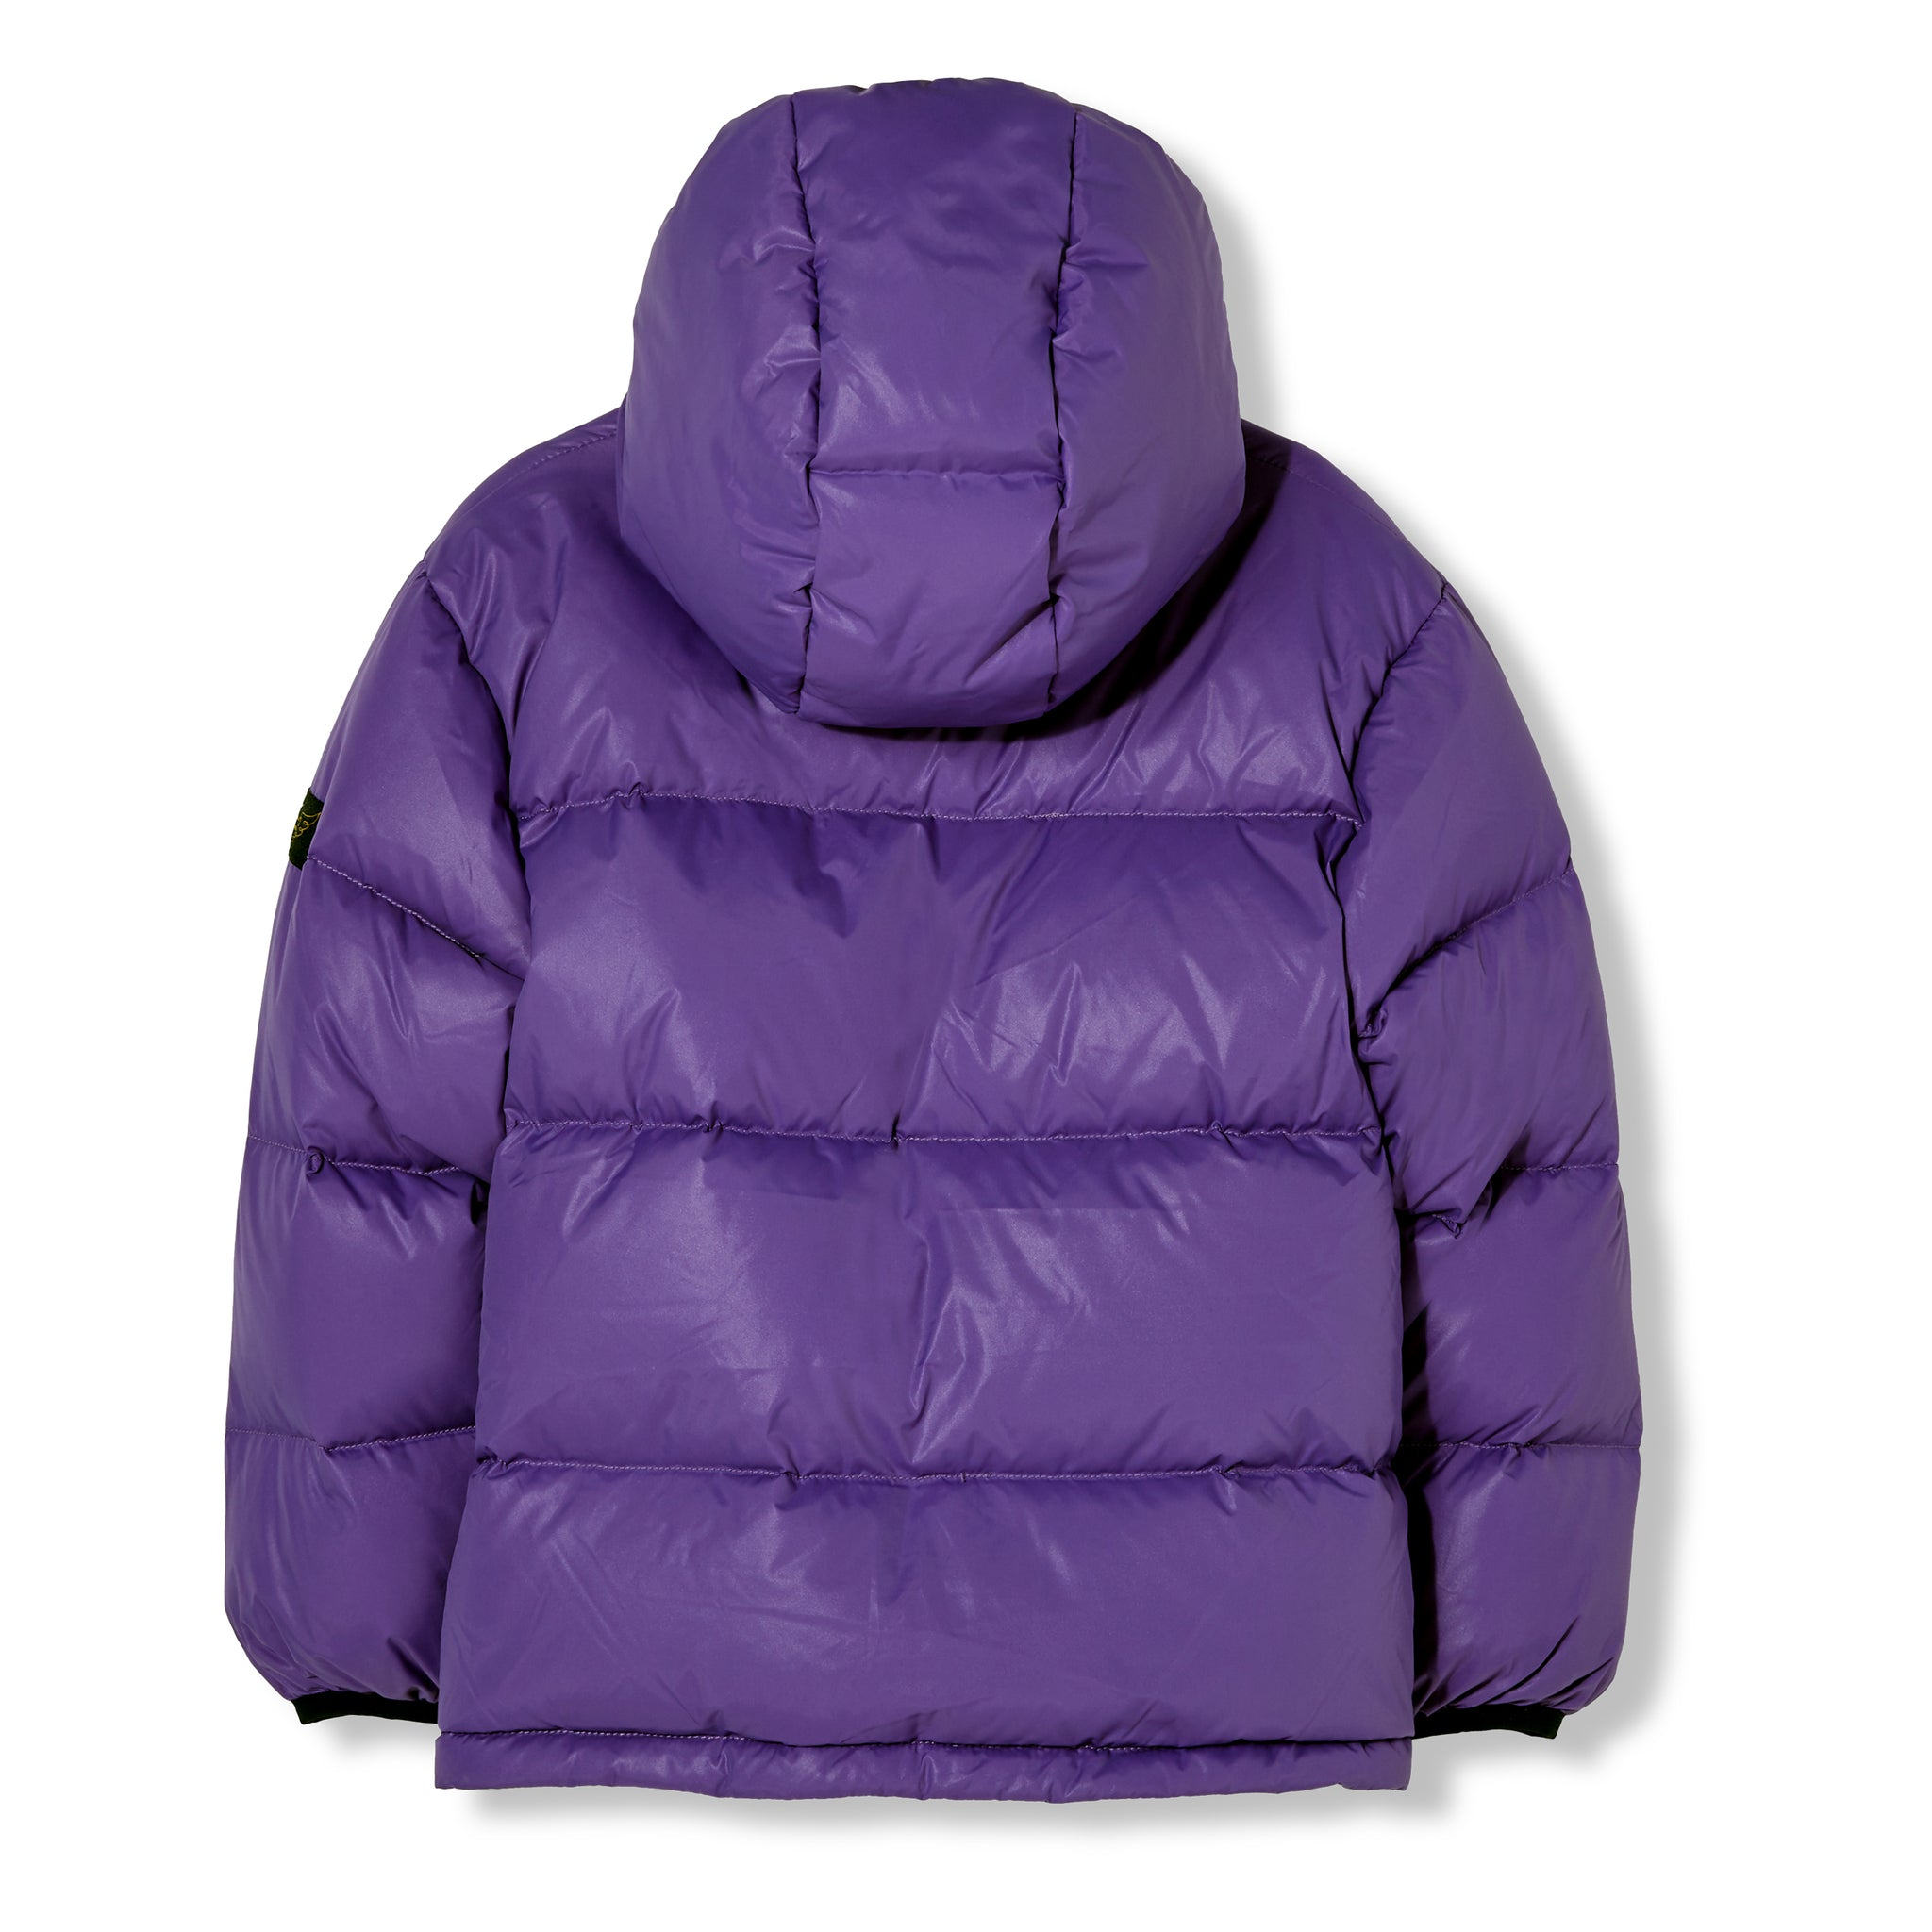 SNOWFLOW Violet - Down Jacket 3